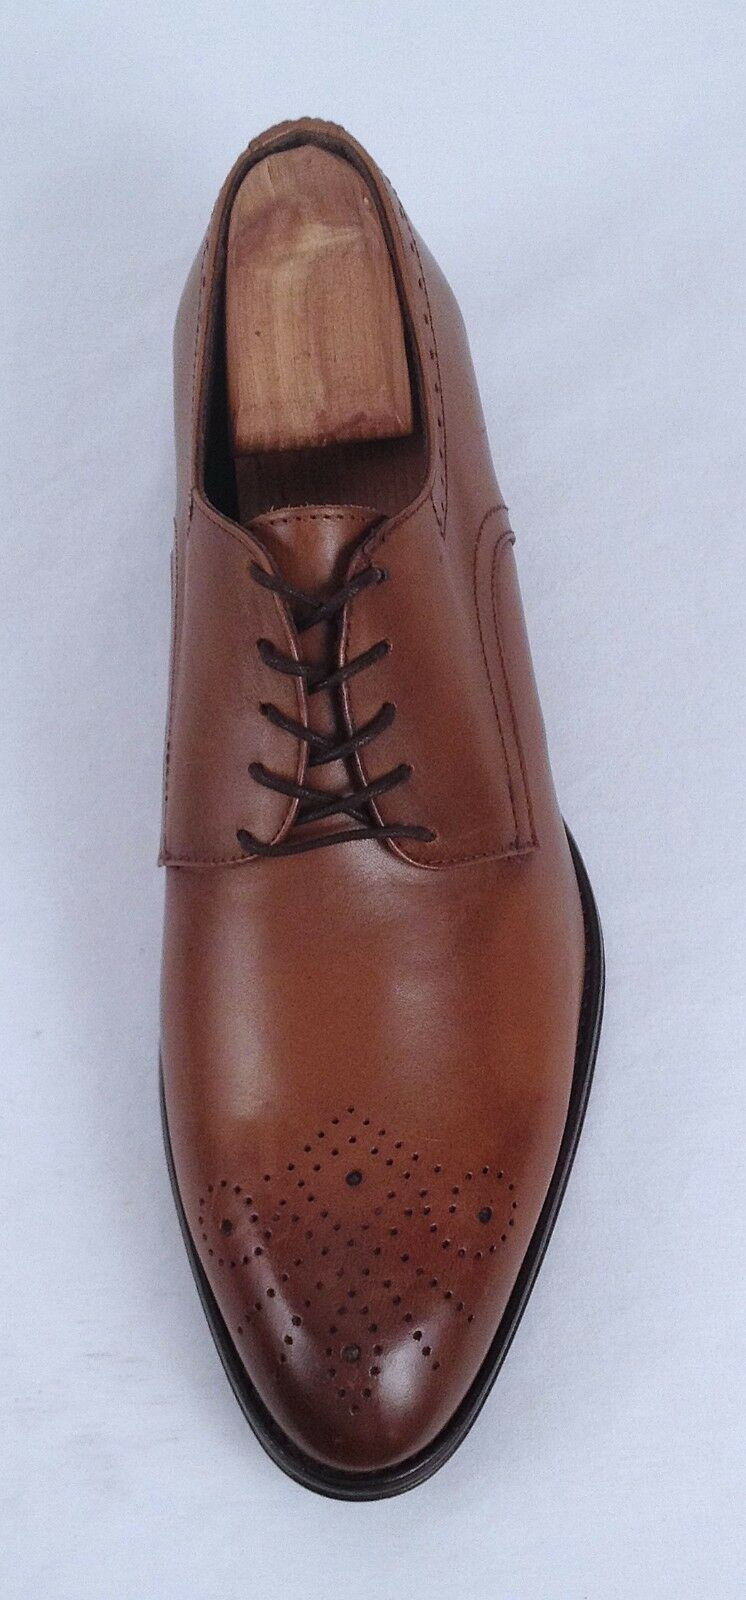 NEW!! To Boot New York Medallion Toe Oxford- M- Brown- Size 10 M- Oxford-  398 44caff